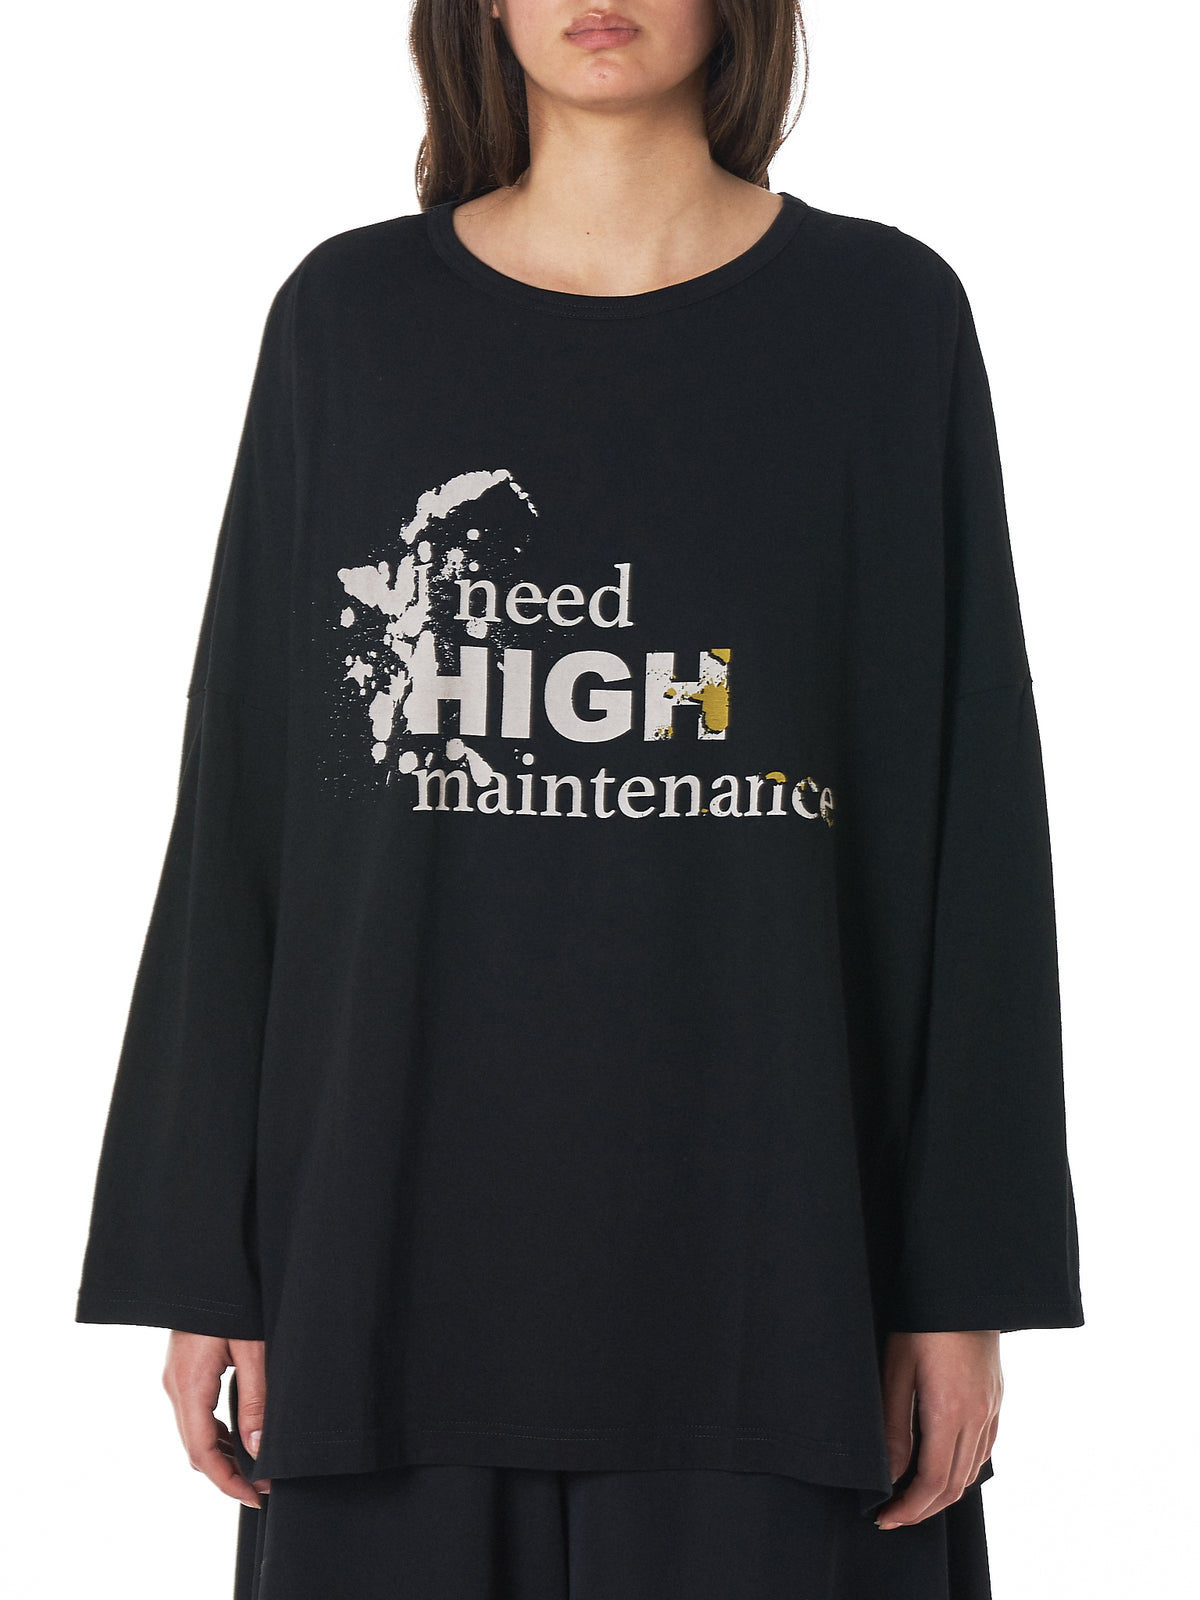 'HIGH maintenance' Long-Sleeve Top (NV-T08-081-BLACK)